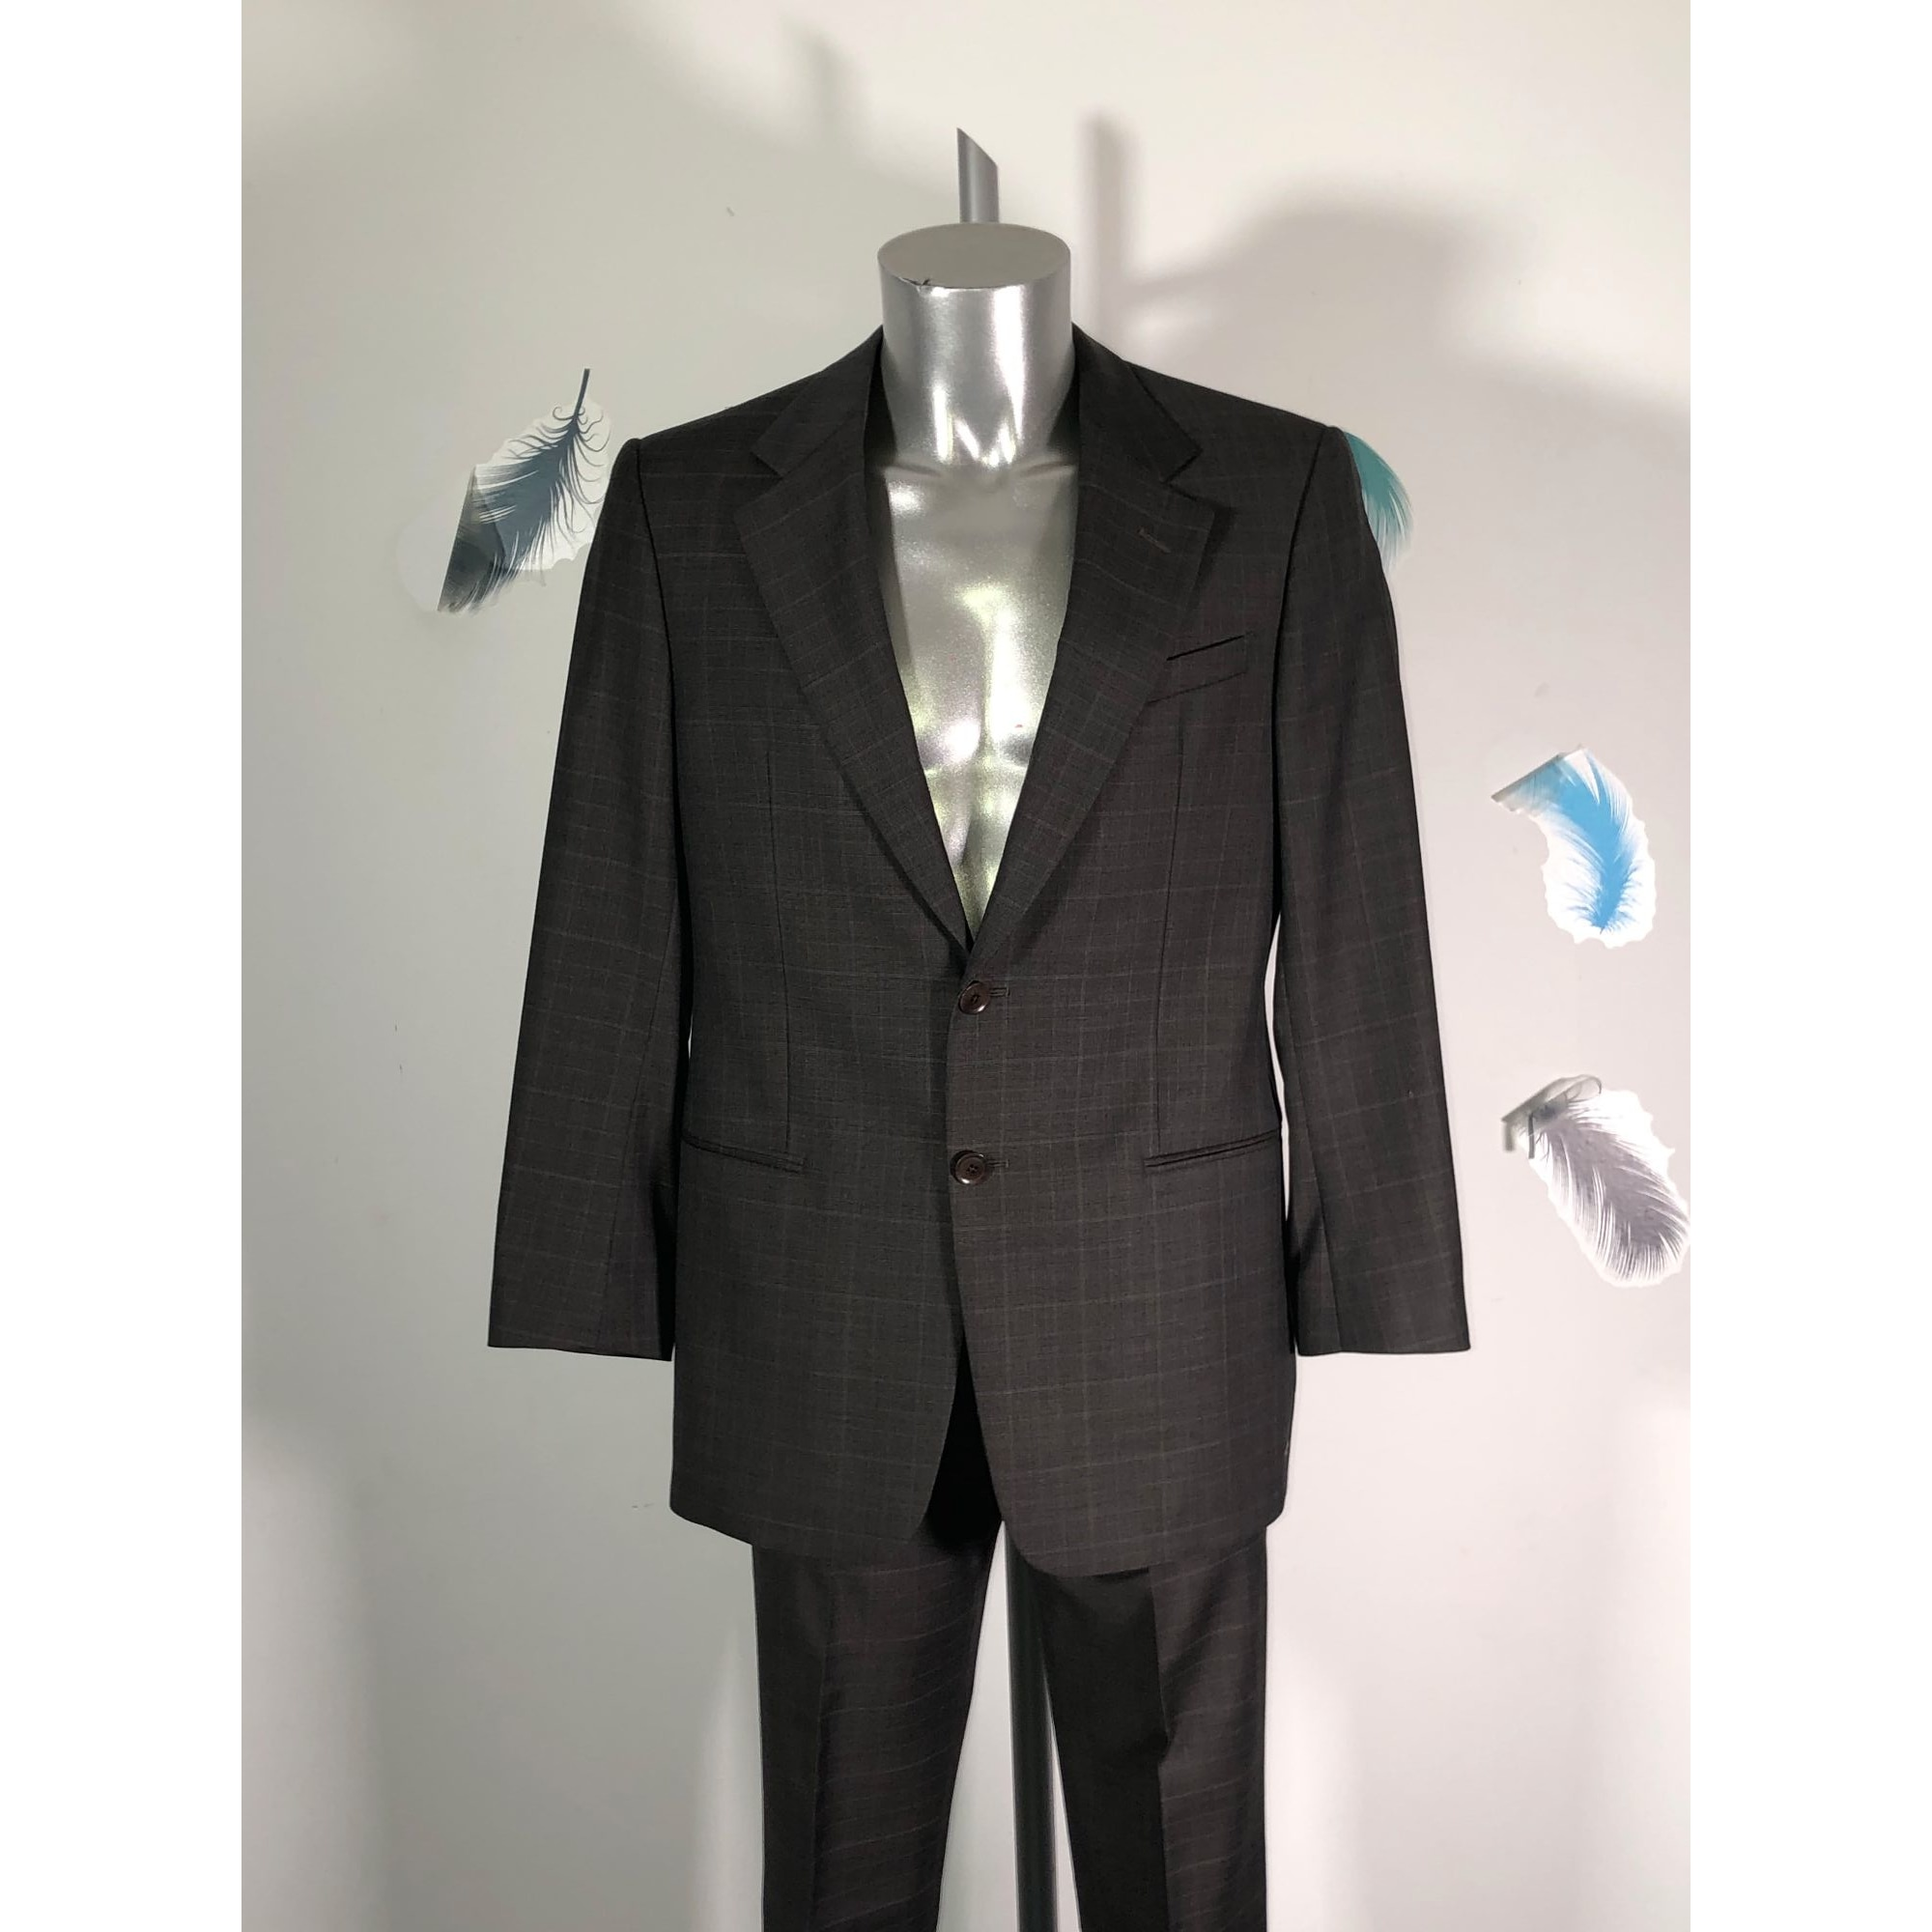 Costume complet ARMANI Gris, anthracite